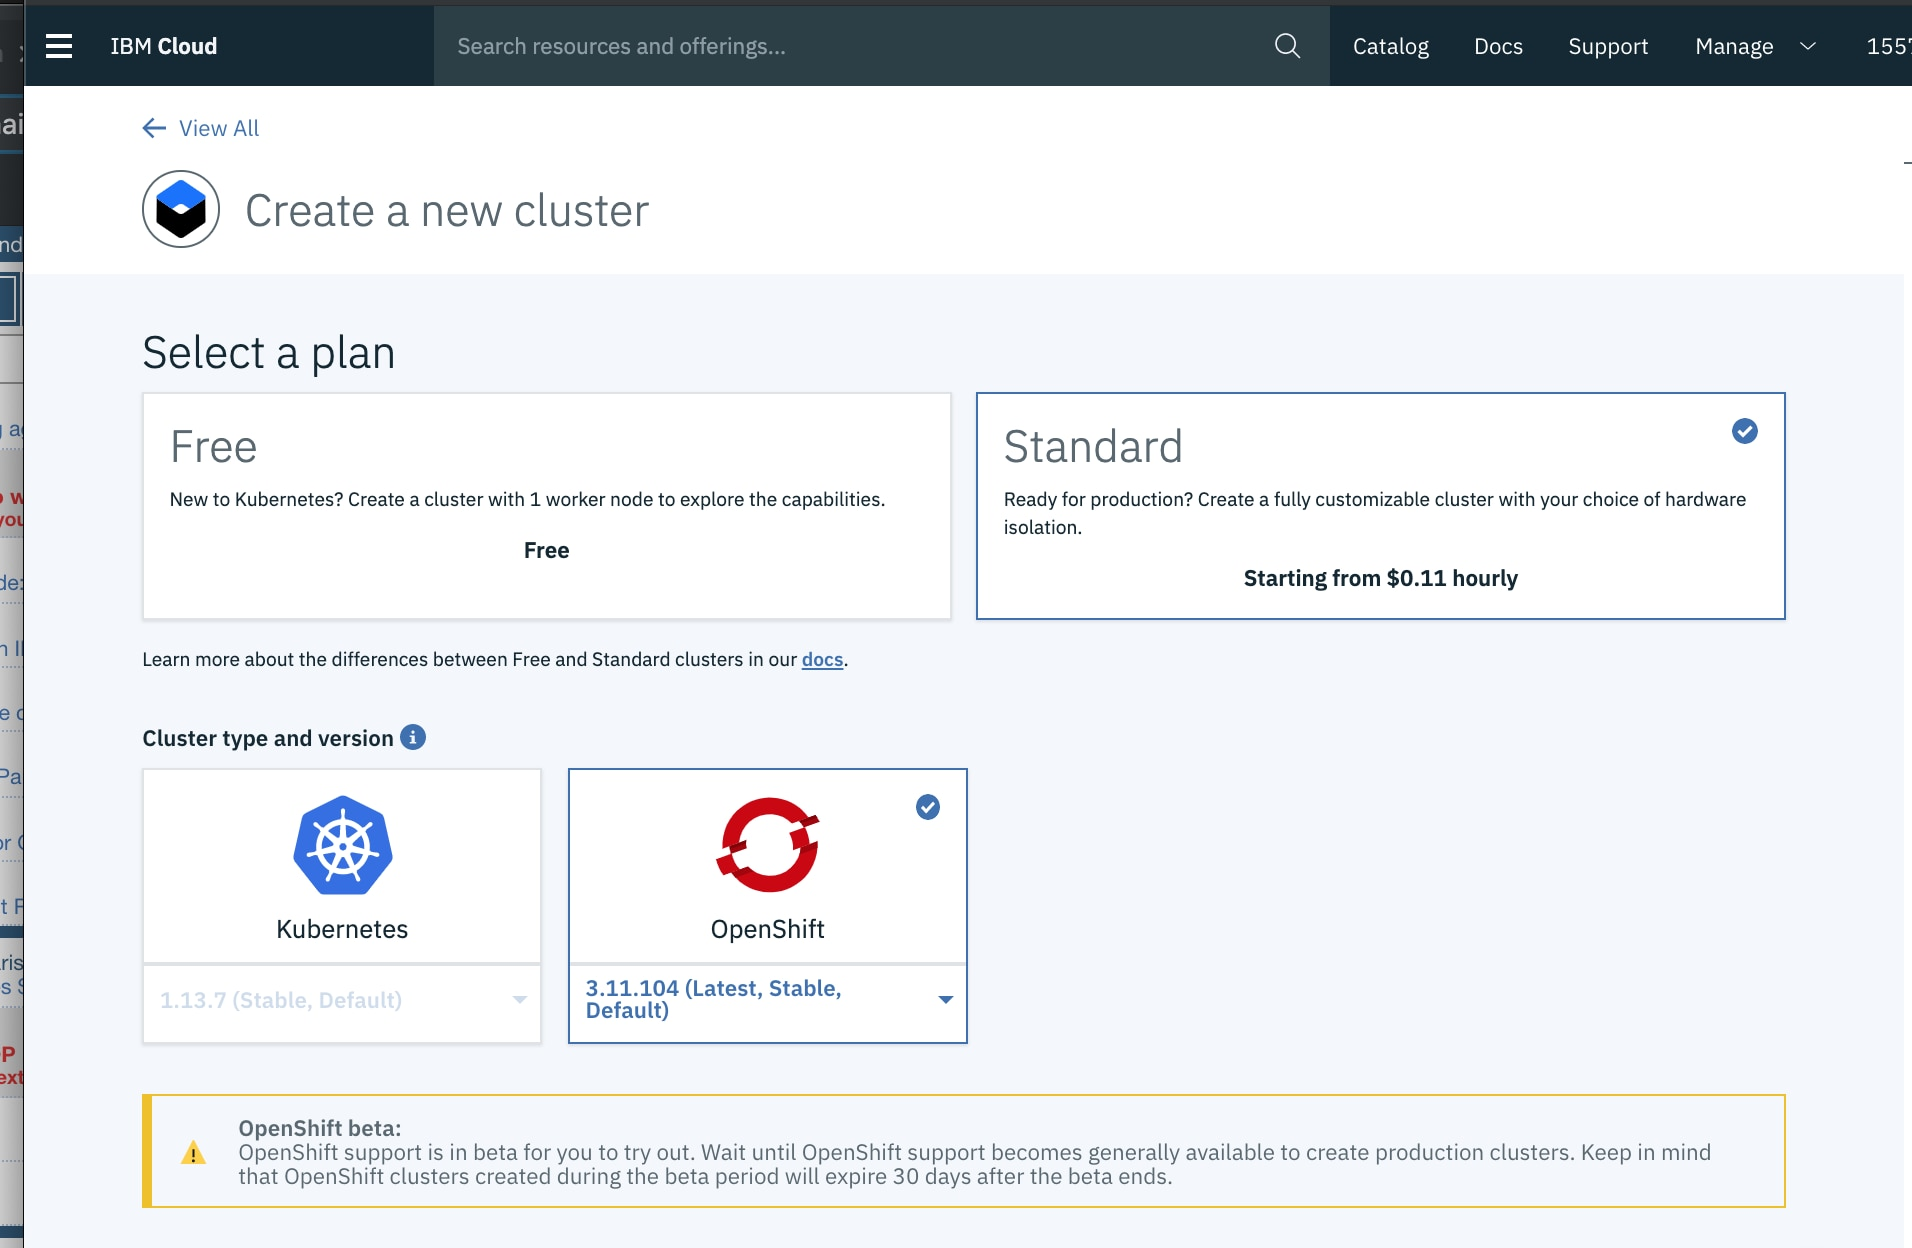 Both cluster types—upstream Kubernetes and OpenShift—are fully managed offerings by IBM.